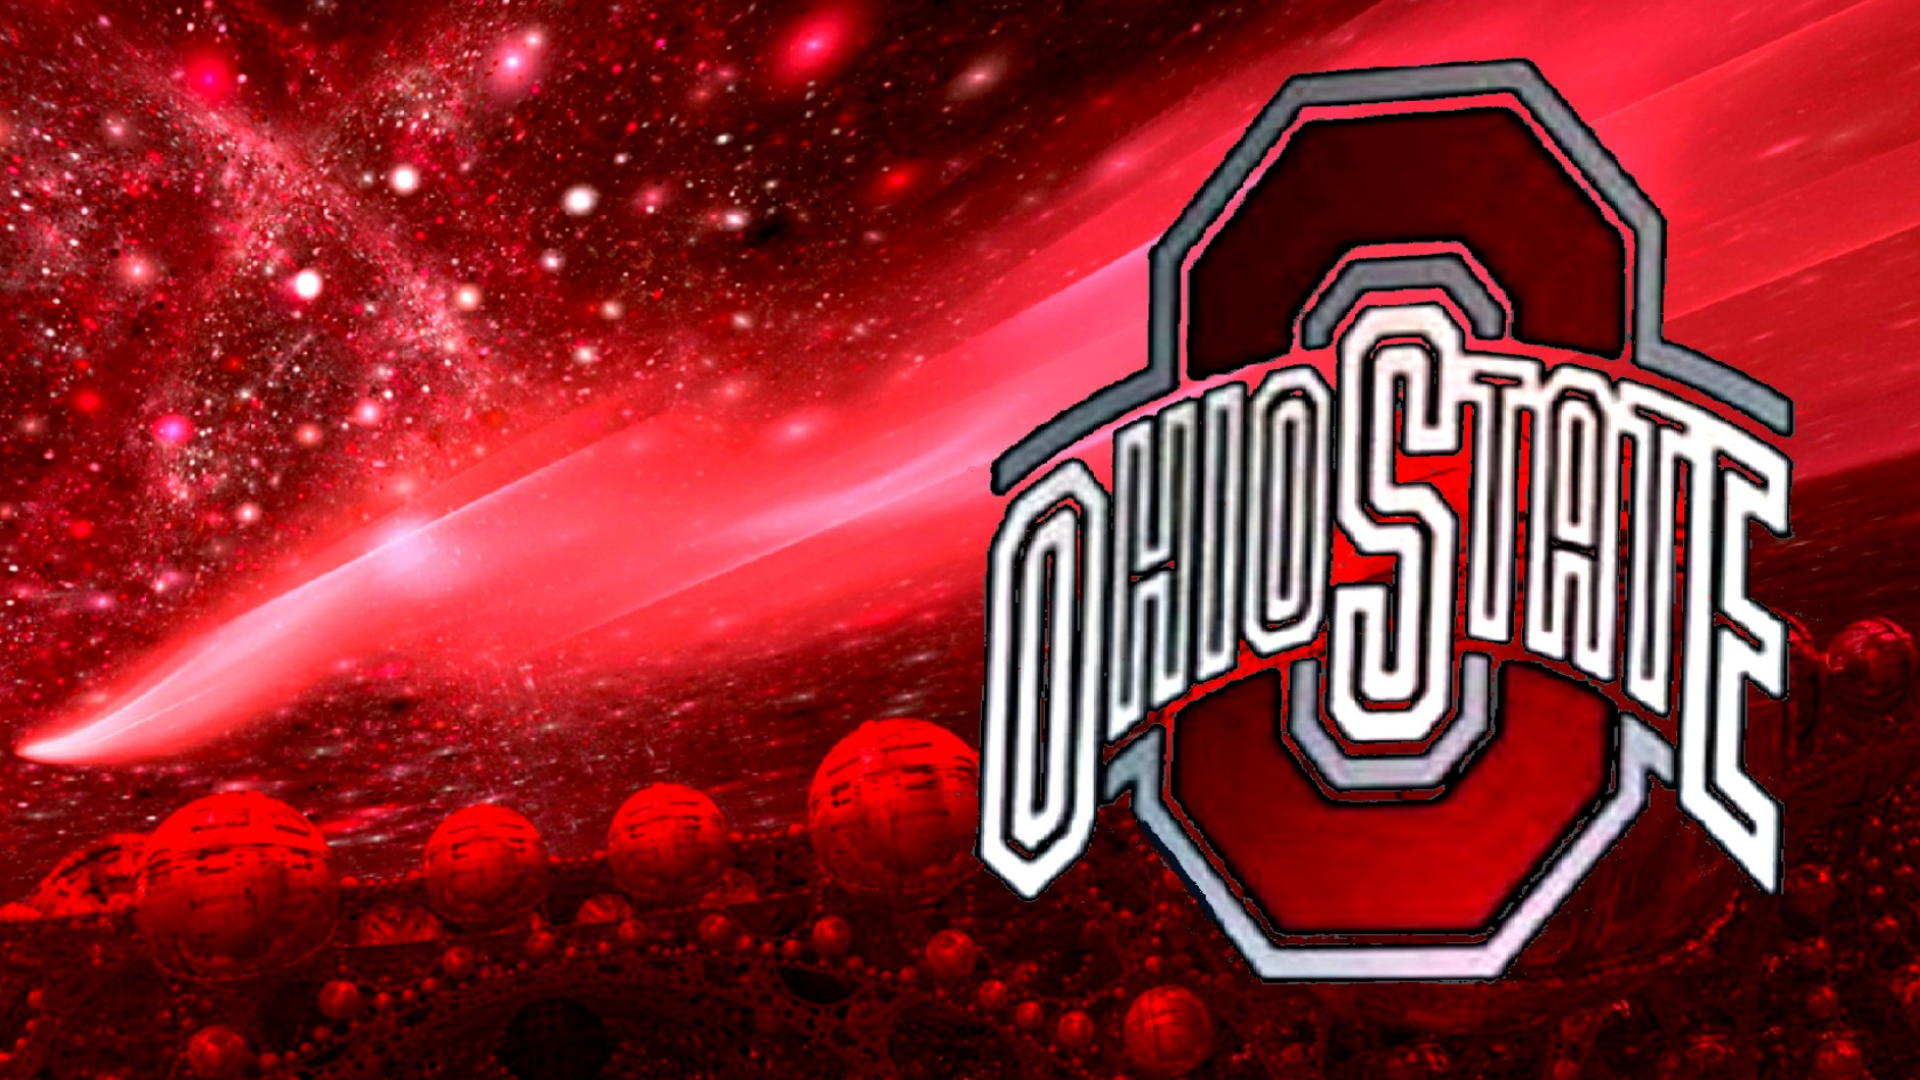 ... 3D - Ohio State Football : Desktop and mobile wallpaper : Wallippo